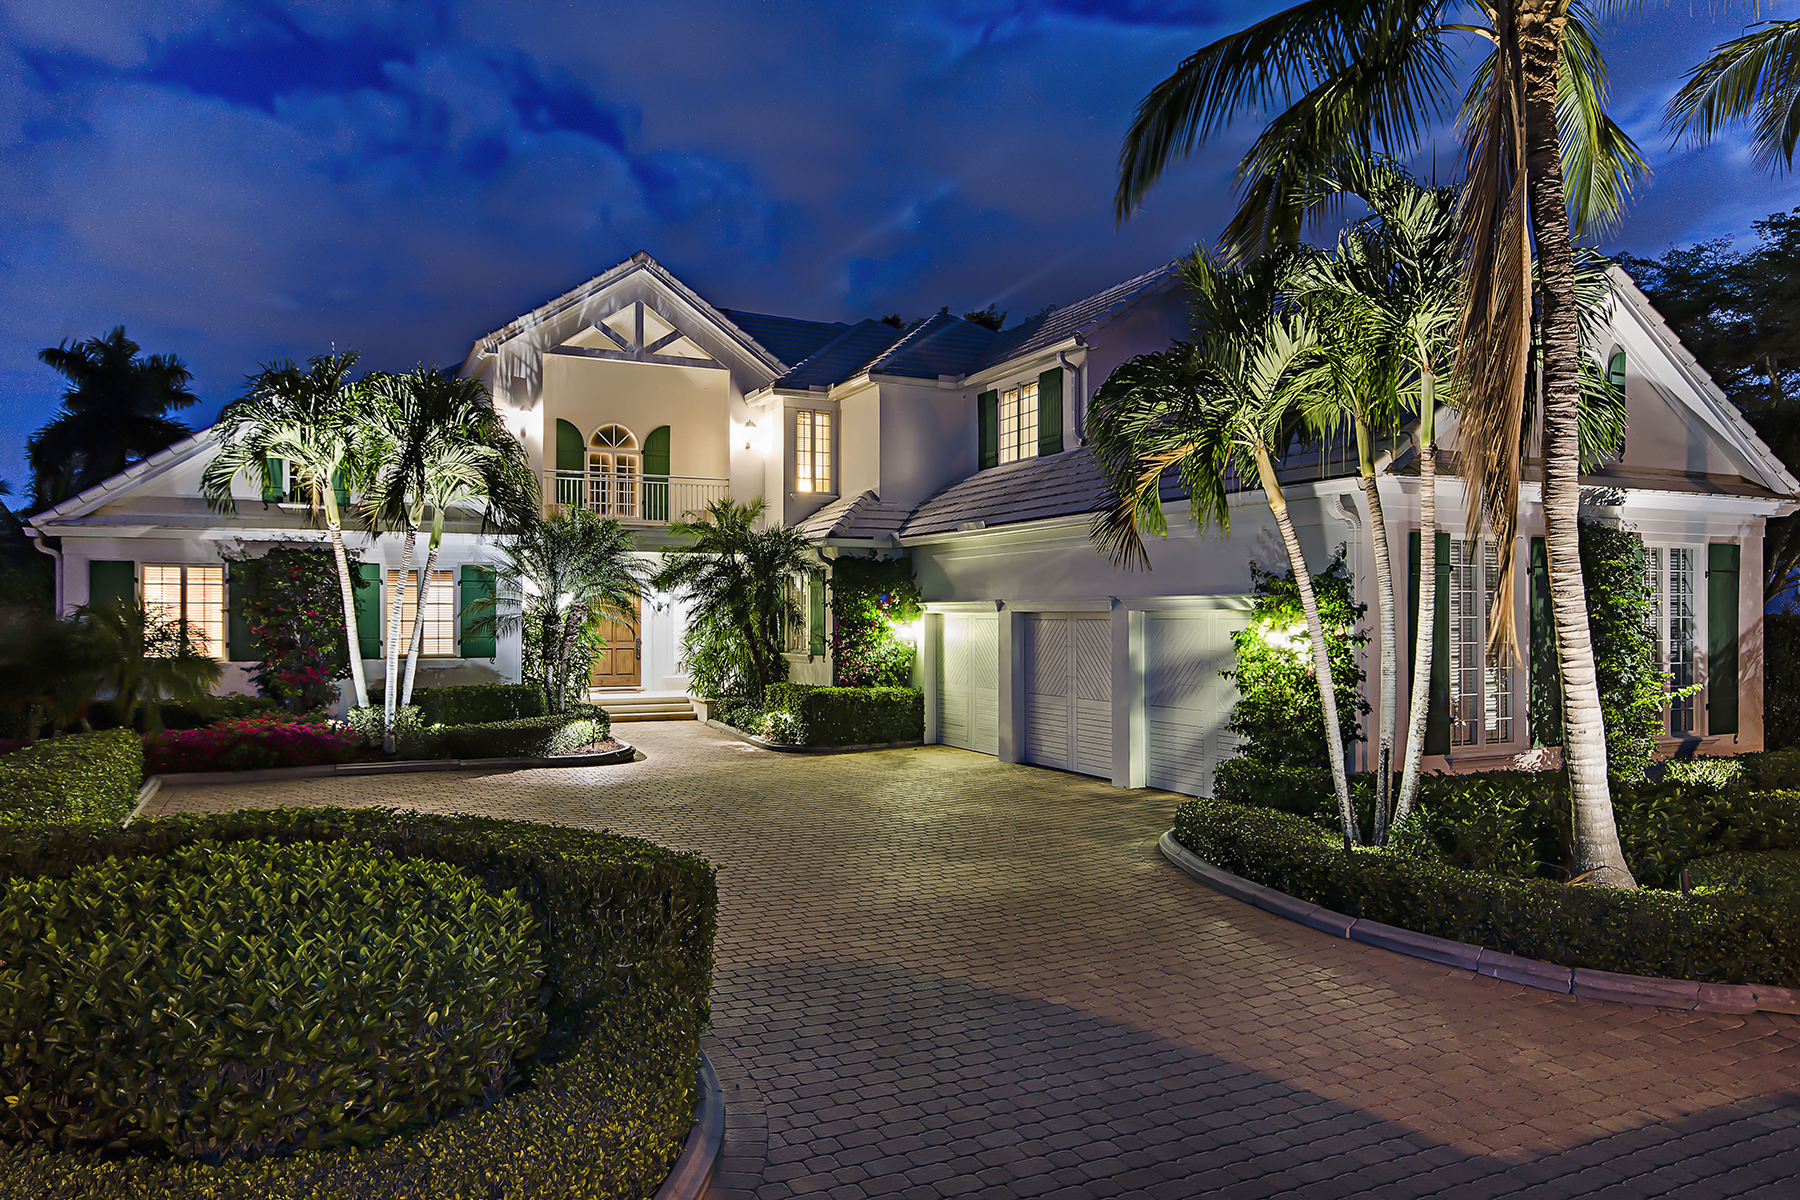 Single Family Home for Sale at PORT ROYAL 1099 Spyglass Ln, Naples, Florida 34102 United States